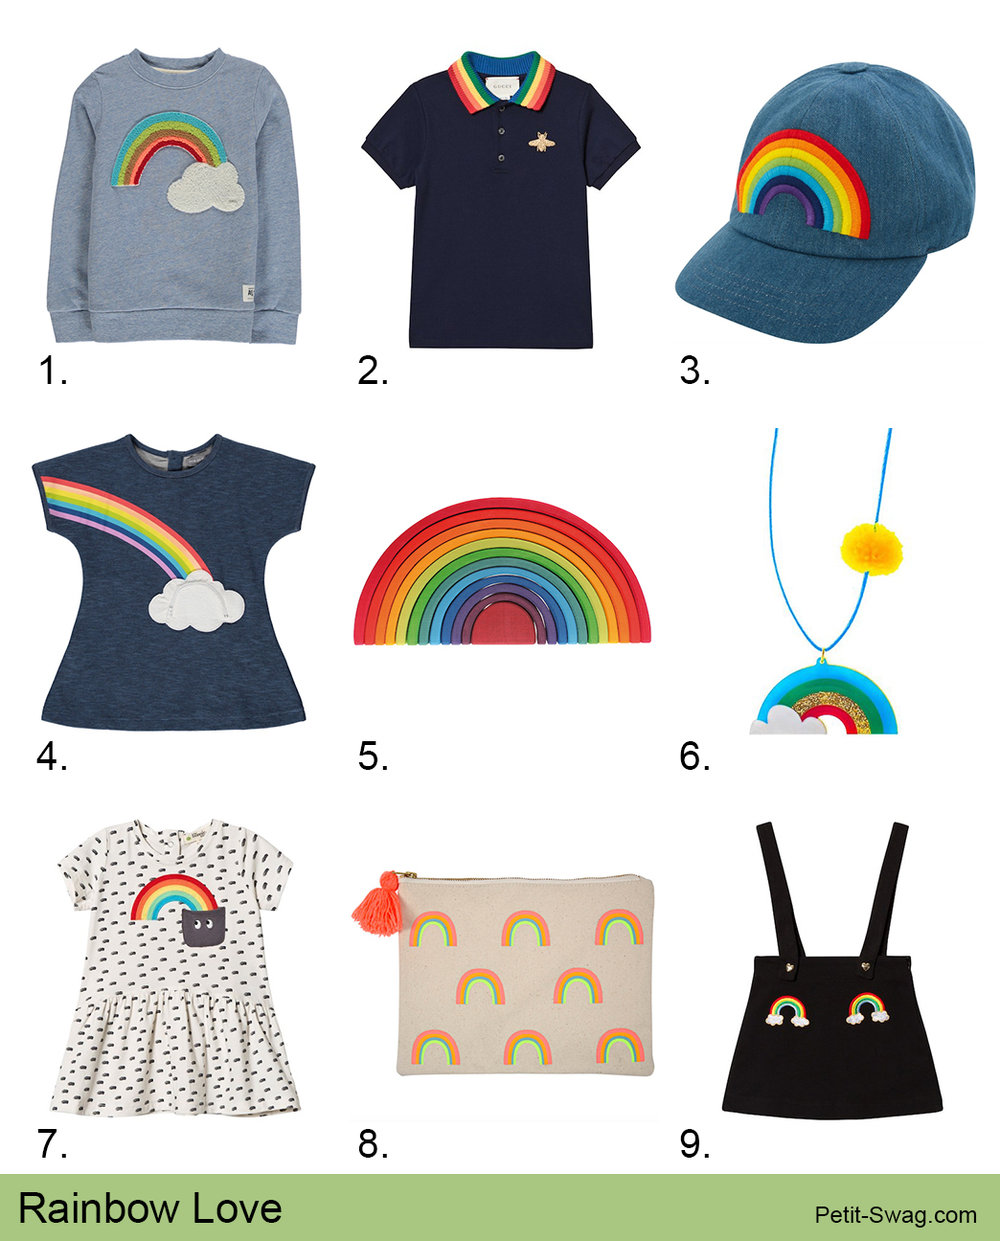 Rainbow Love | Petit-Swag.com